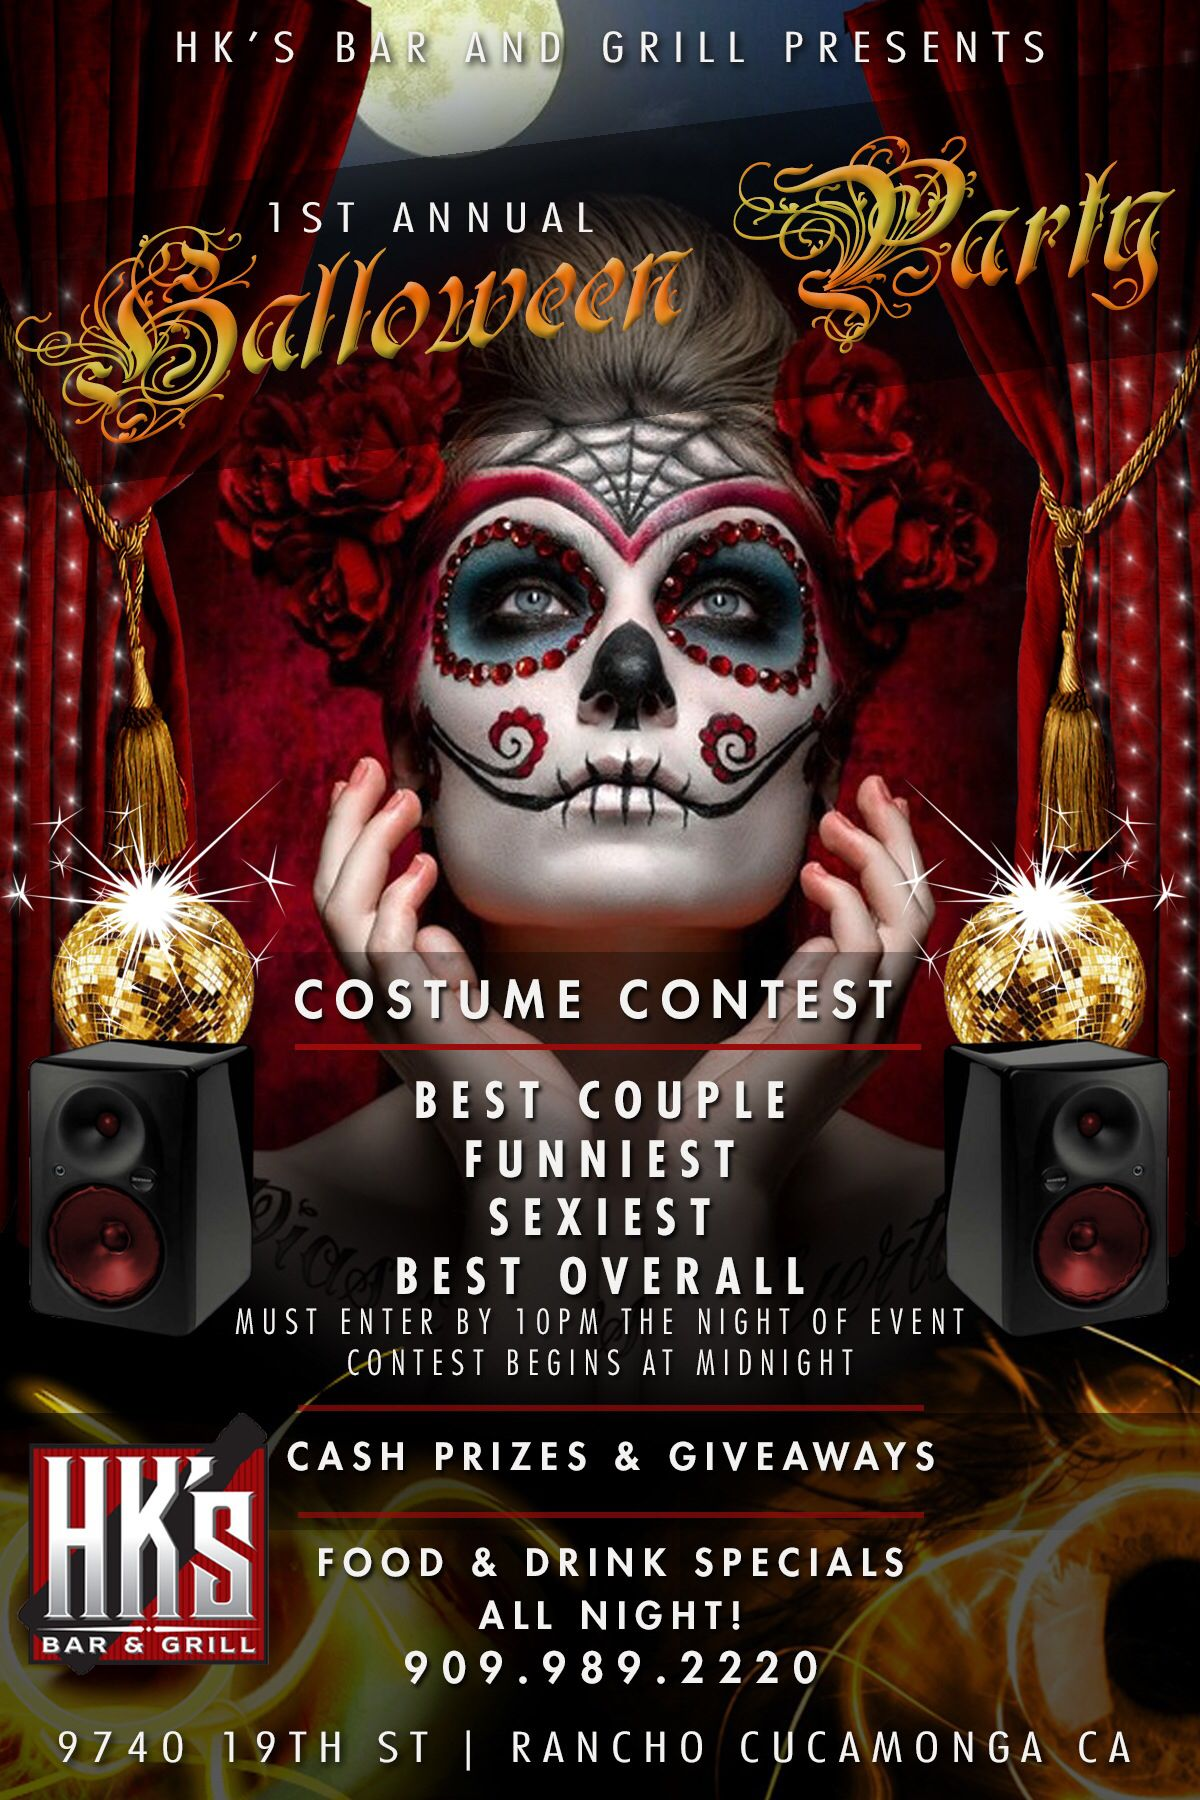 A Halloween Party Flyer Design don for HKS Bar and Grill in Alta ...